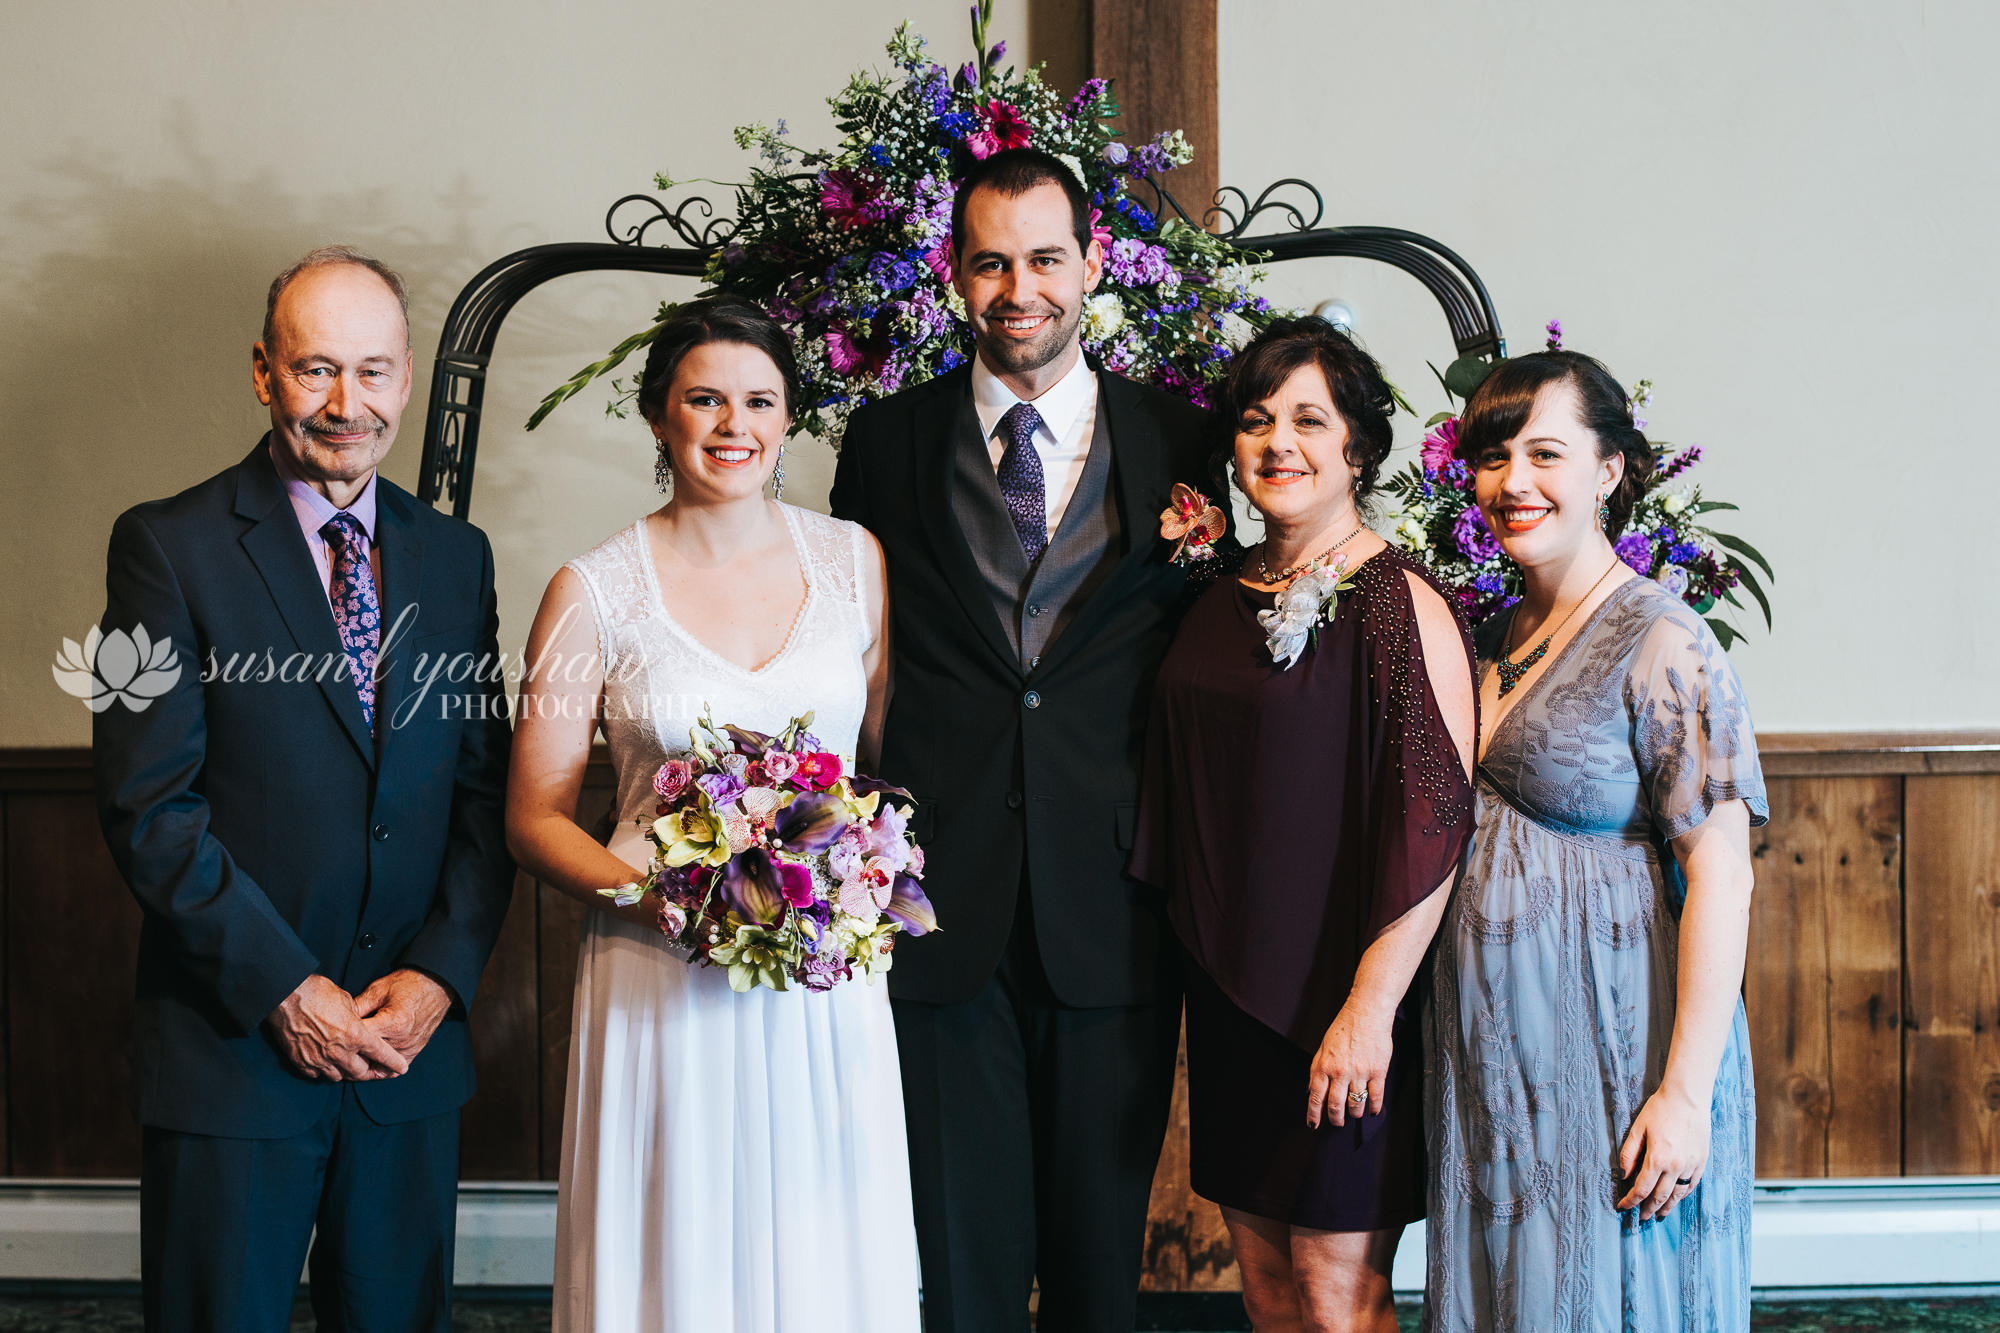 Adena and  Erik Wedding 05-17-2019 SLY Photography-51.jpg